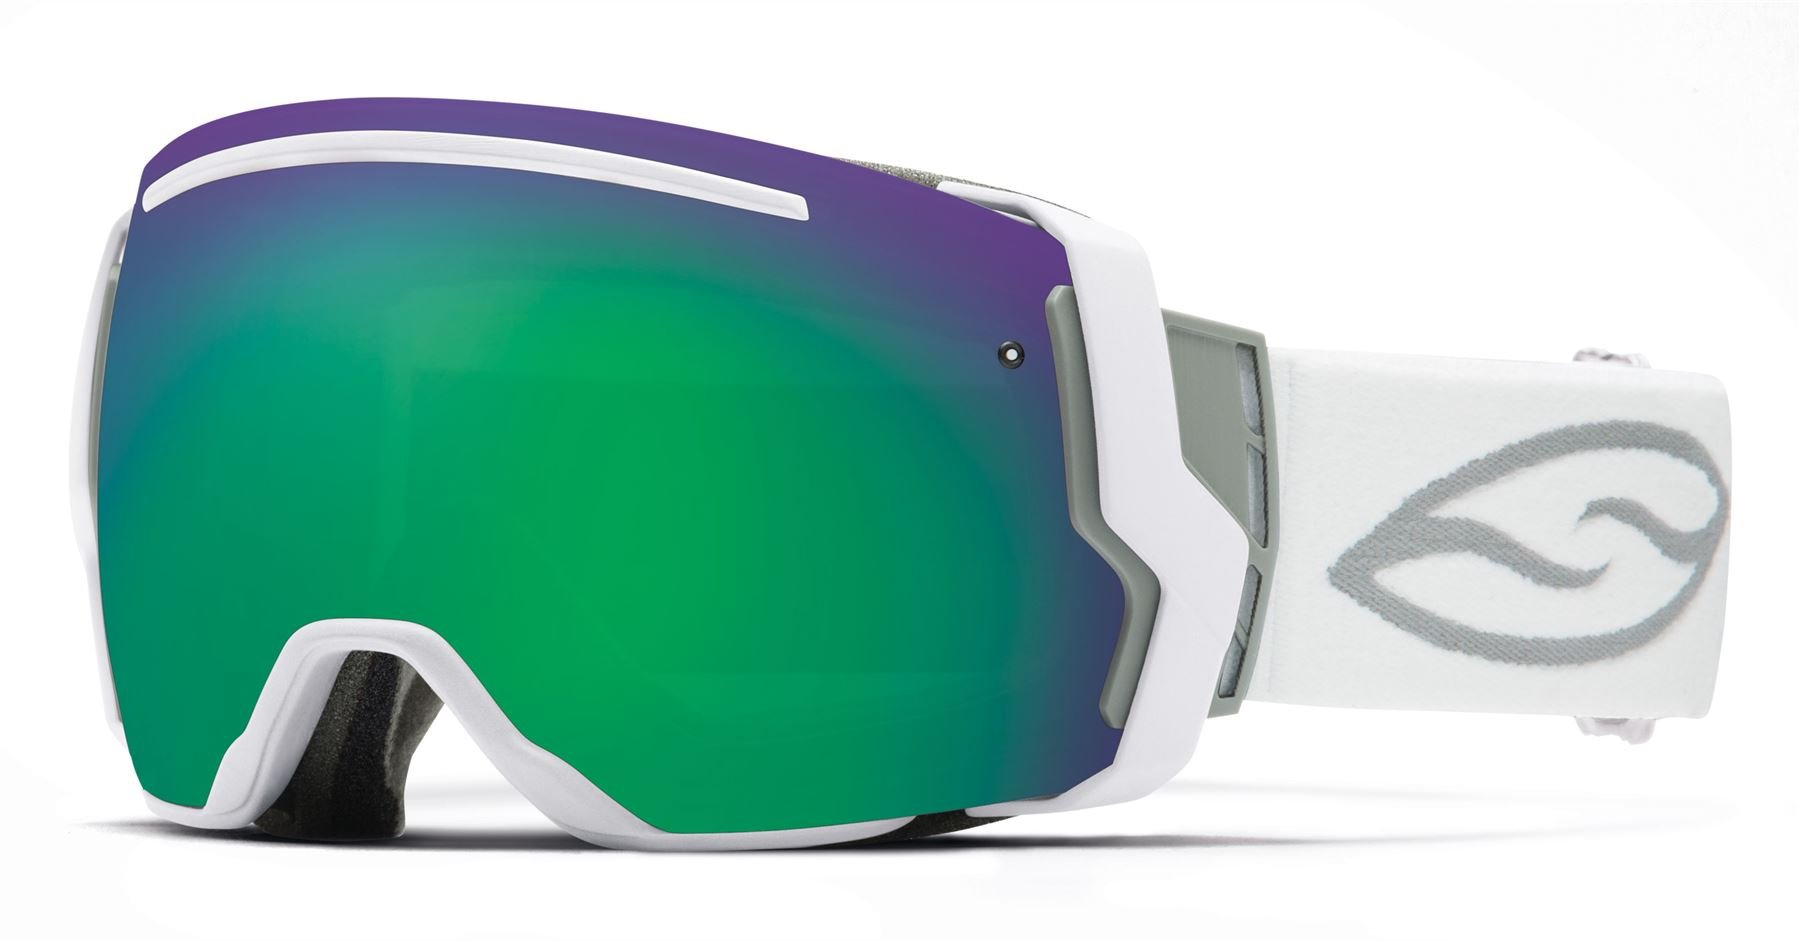 Smith Optics I/O7 Vaporator Series Snocross Snowmobile Goggles Eyewear - White/Green Sol-X/Red Sensor / Medium by Smith Optics